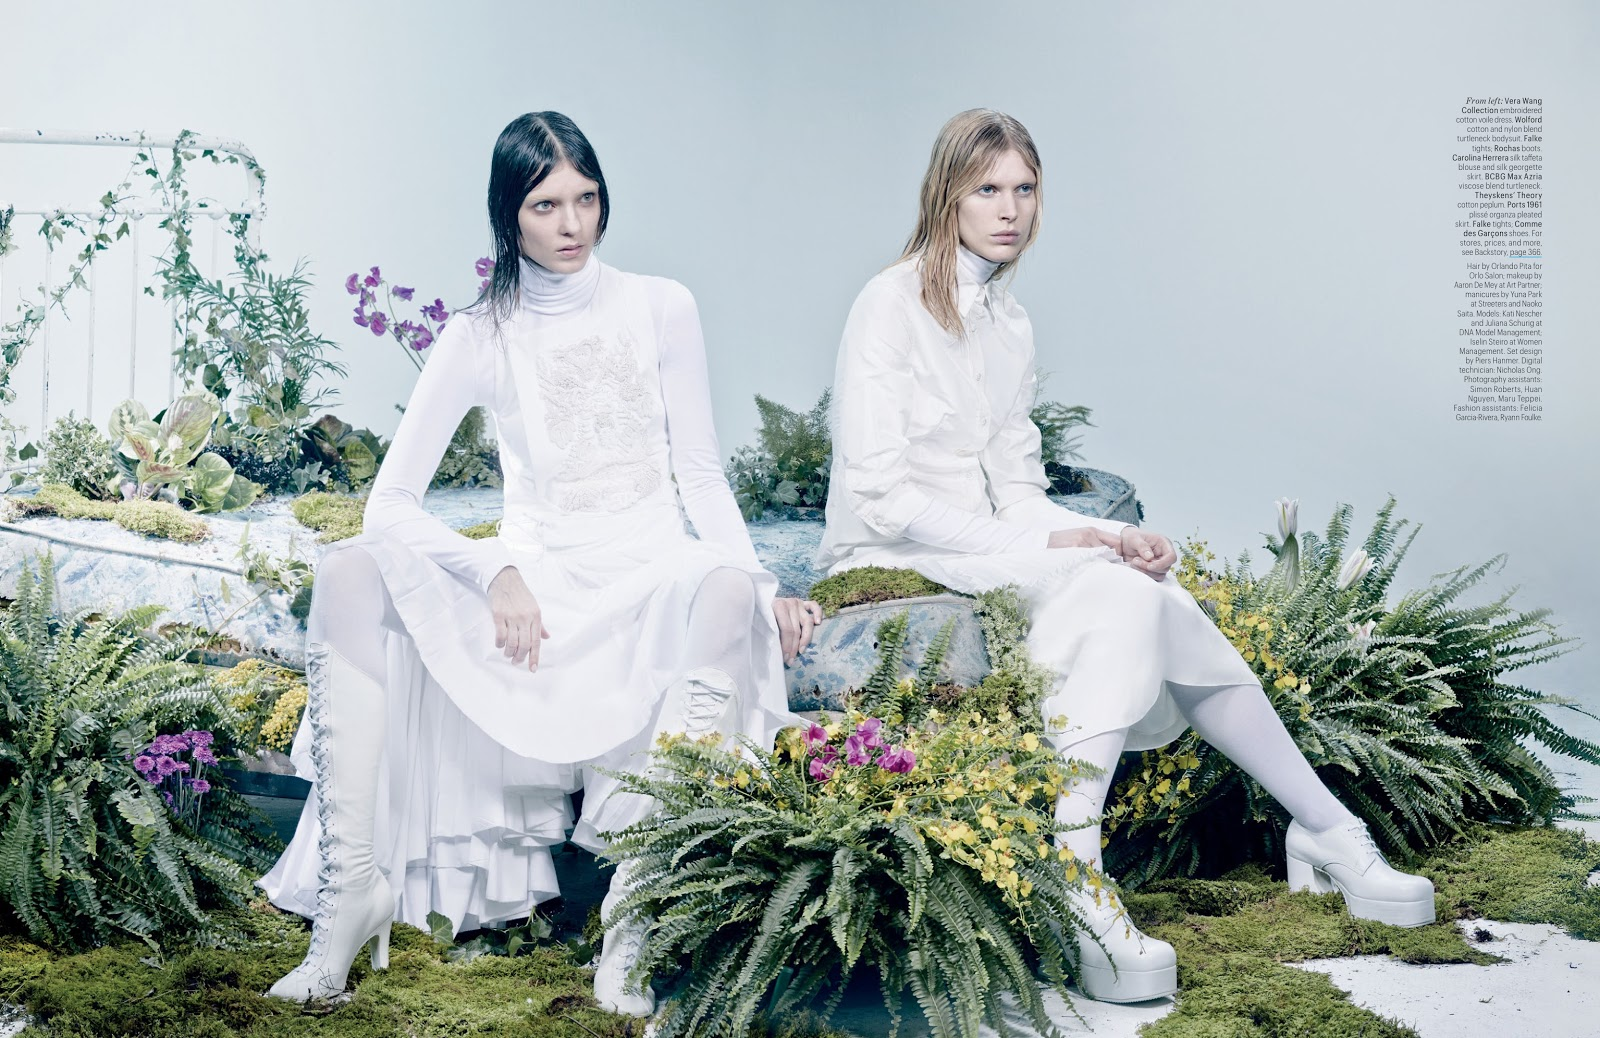 the whites of spring: kati nescher, juliana schurig and iselin ...